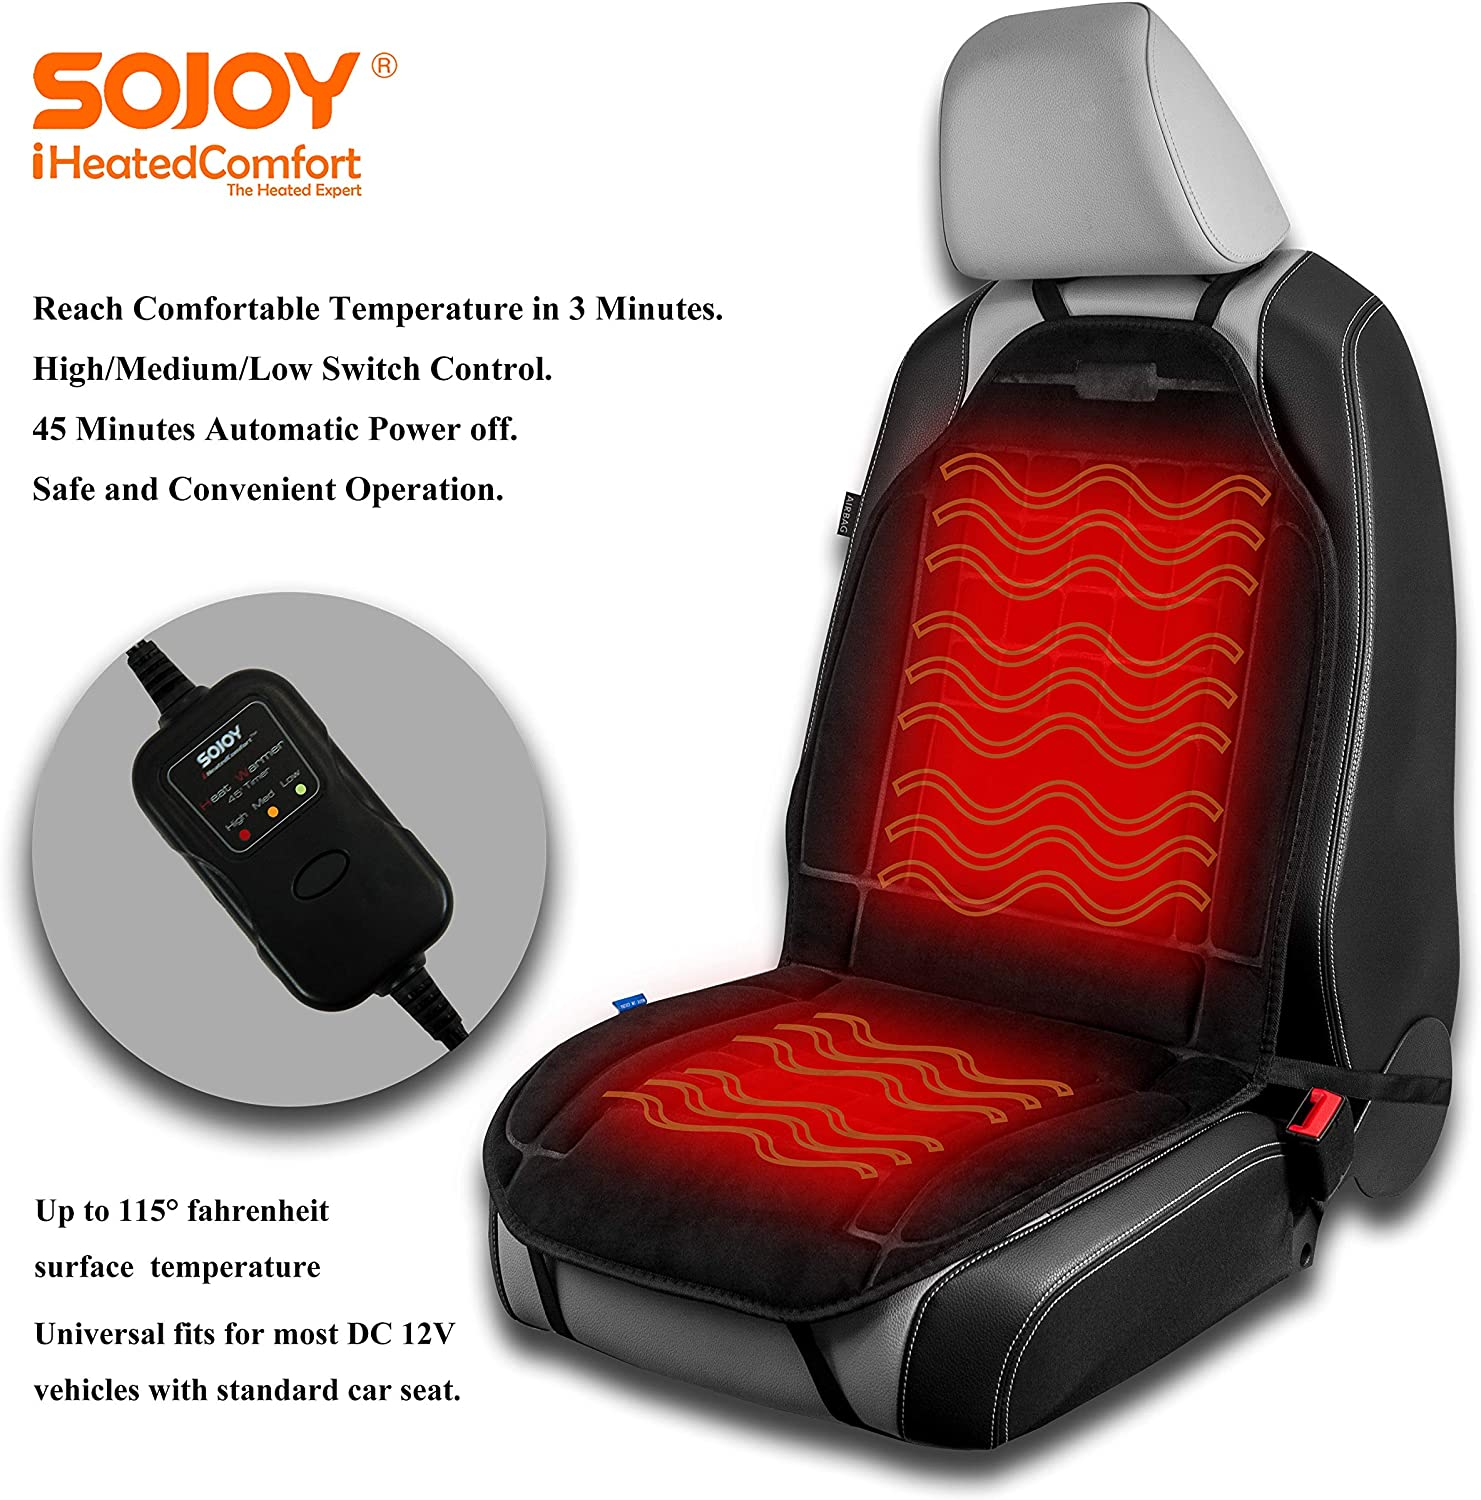 Color Black SJ-227R007 Sojoy Universal 12V Heated Seat Cushion Made with Super Soft Velour Providing a Fast Warming Controller and Equipped with a 45 Minutes Heating Timer for a Safety Operation